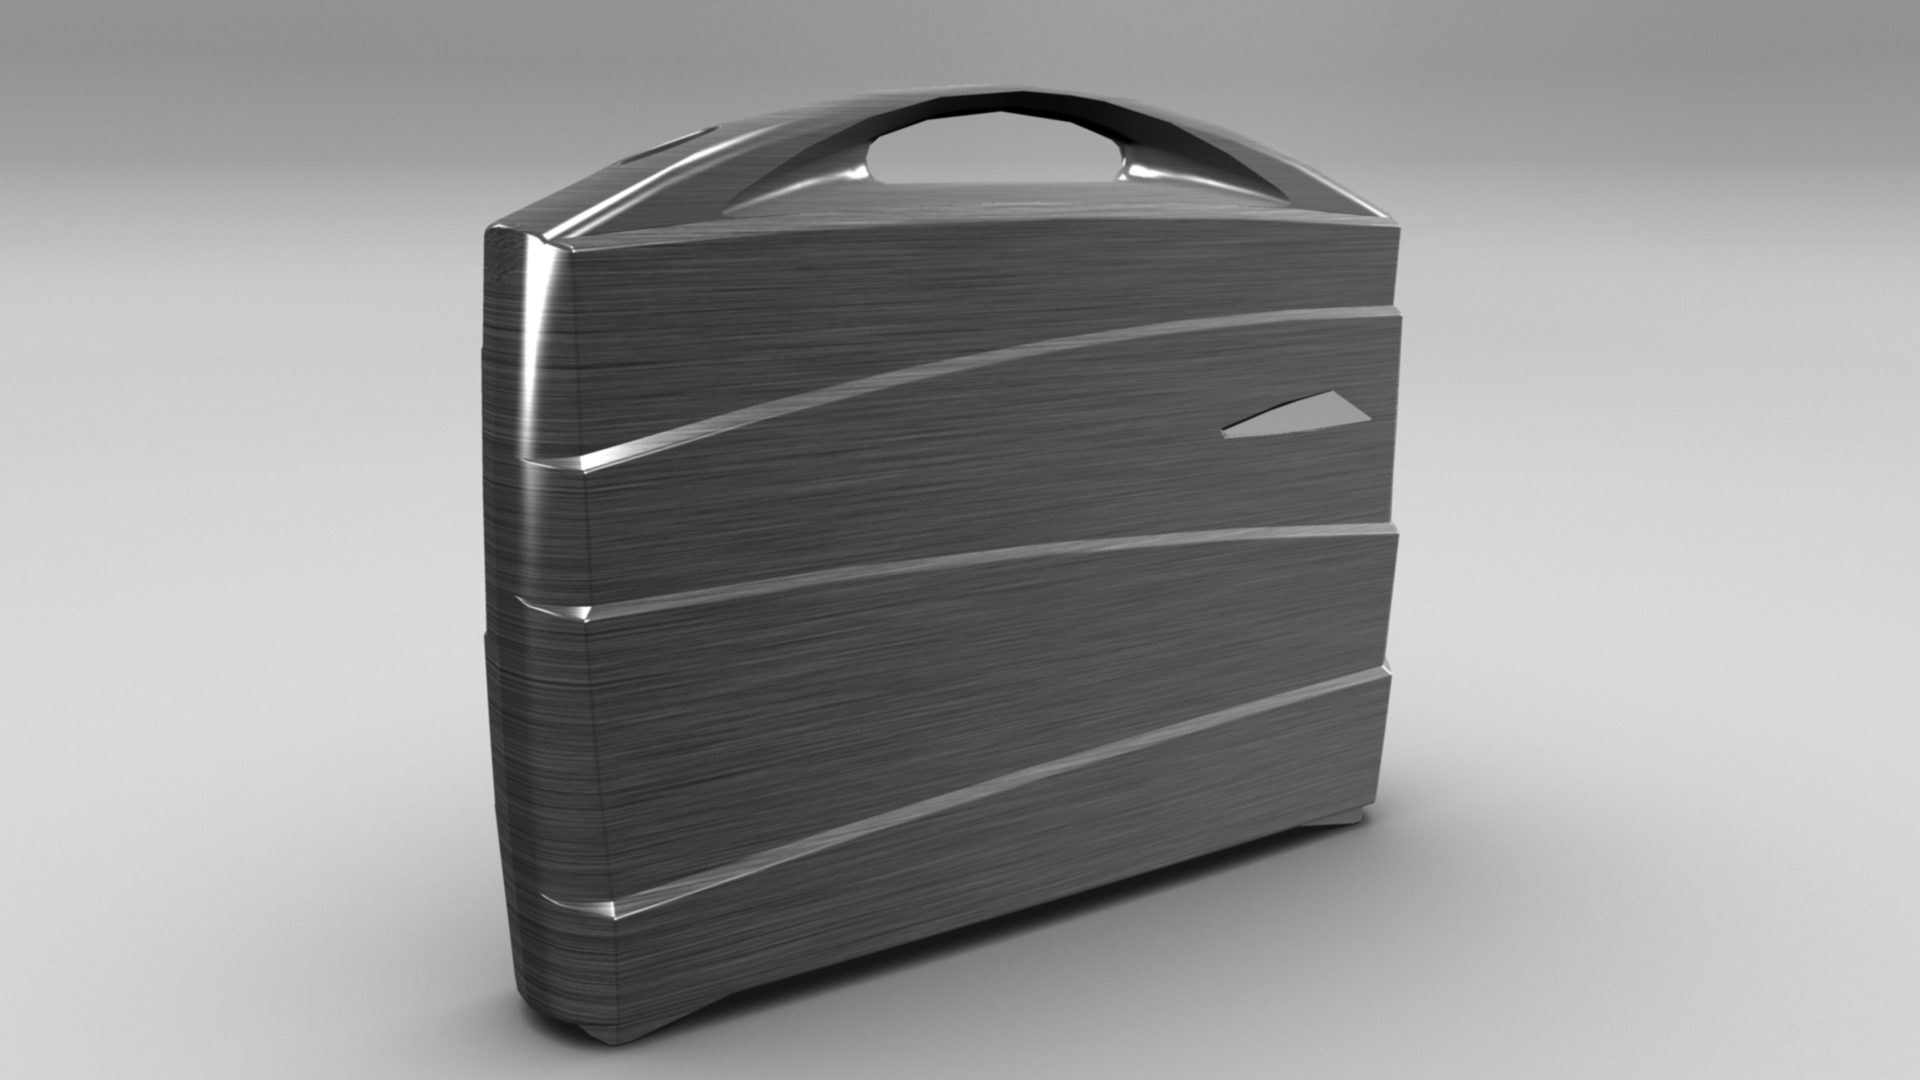 metal suitcase 3d model max fbx ma mb obj 286022